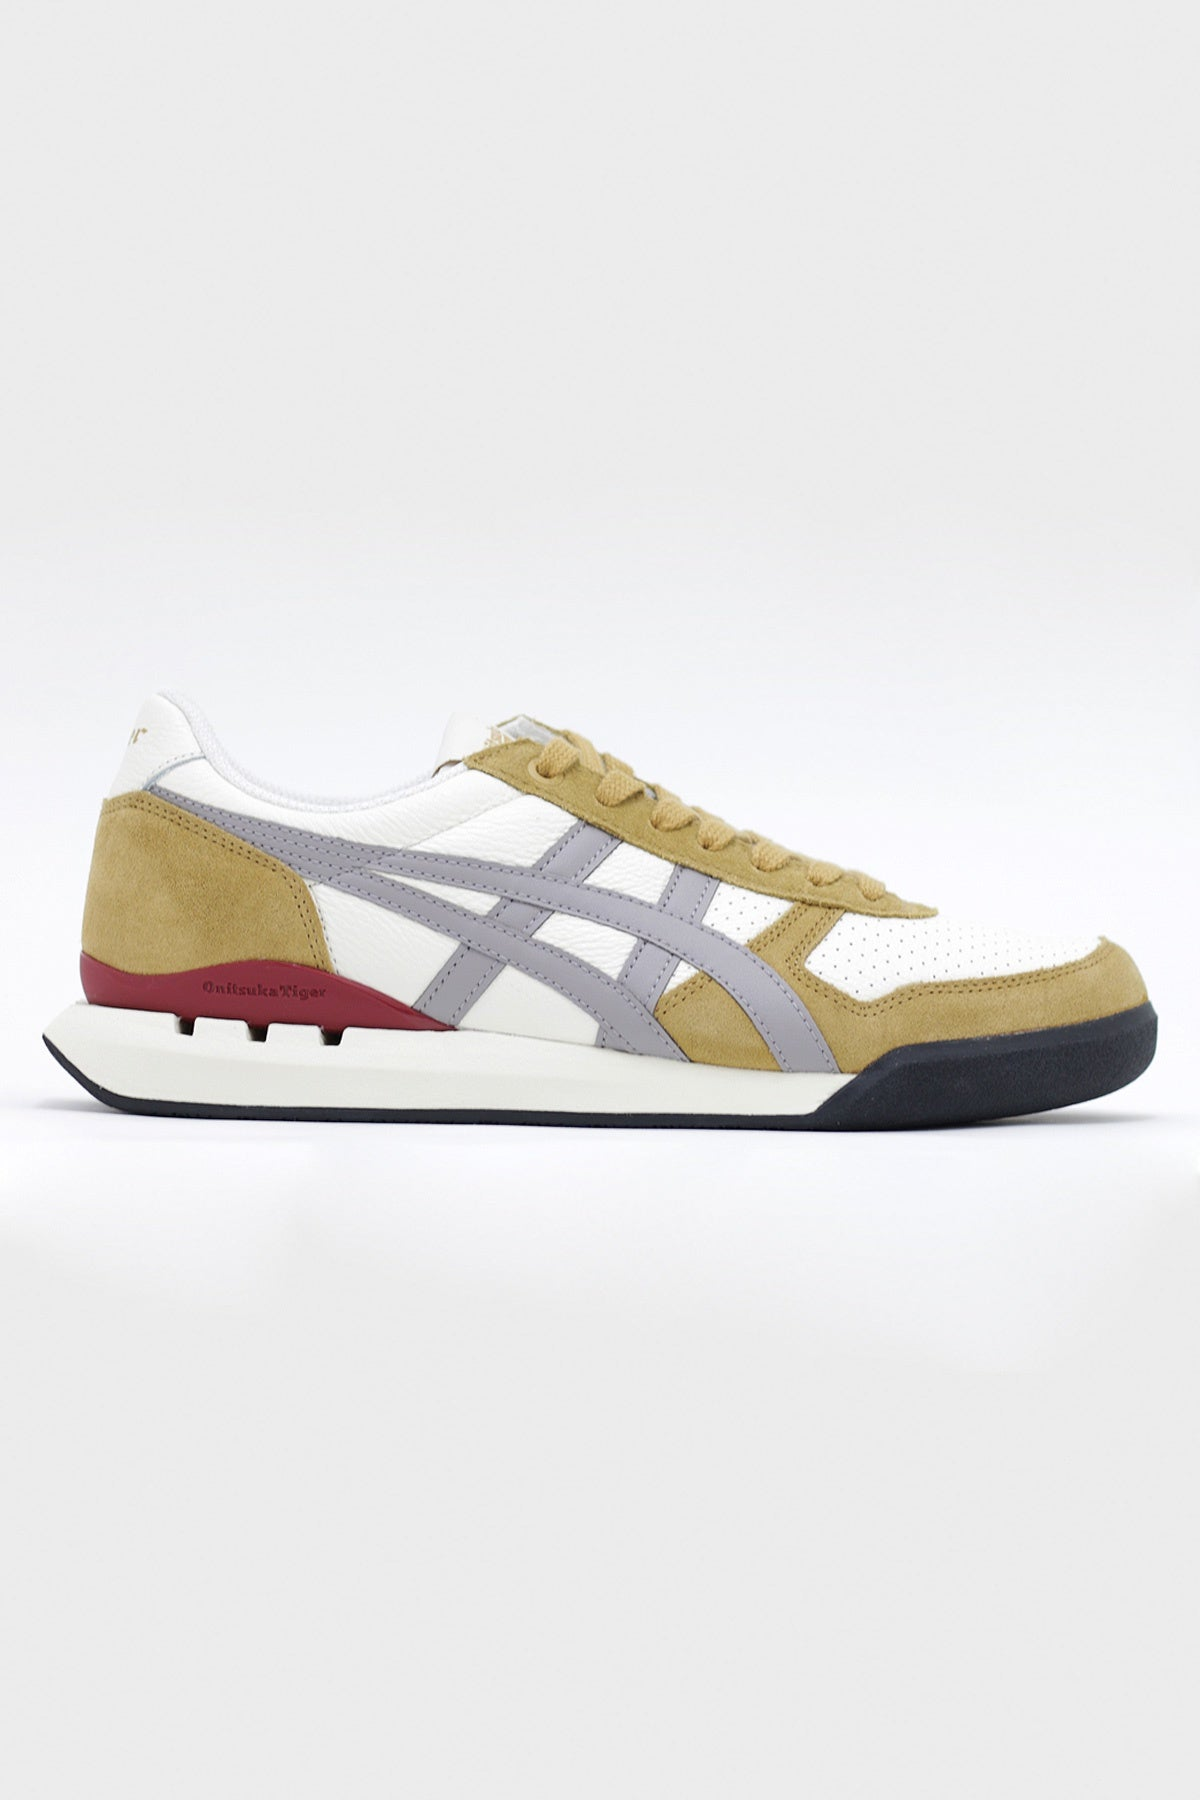 Onitsuka Tiger - Ultimate 81 EX - Cream/Steeple Grey - Canoe Club